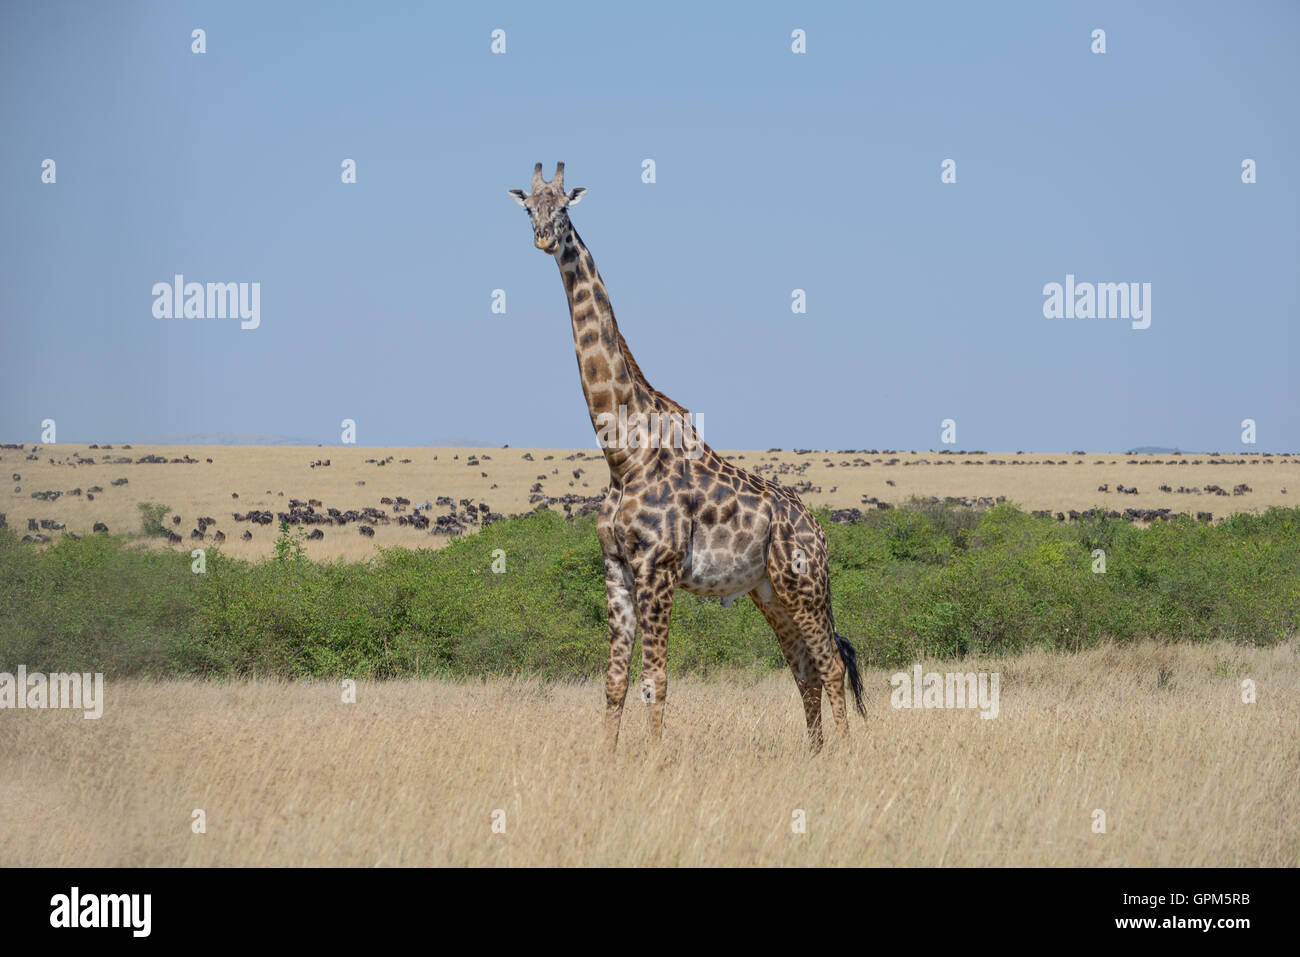 Giraffes in Masai Mara National Reserve in Kenya , Africa - Stock Image